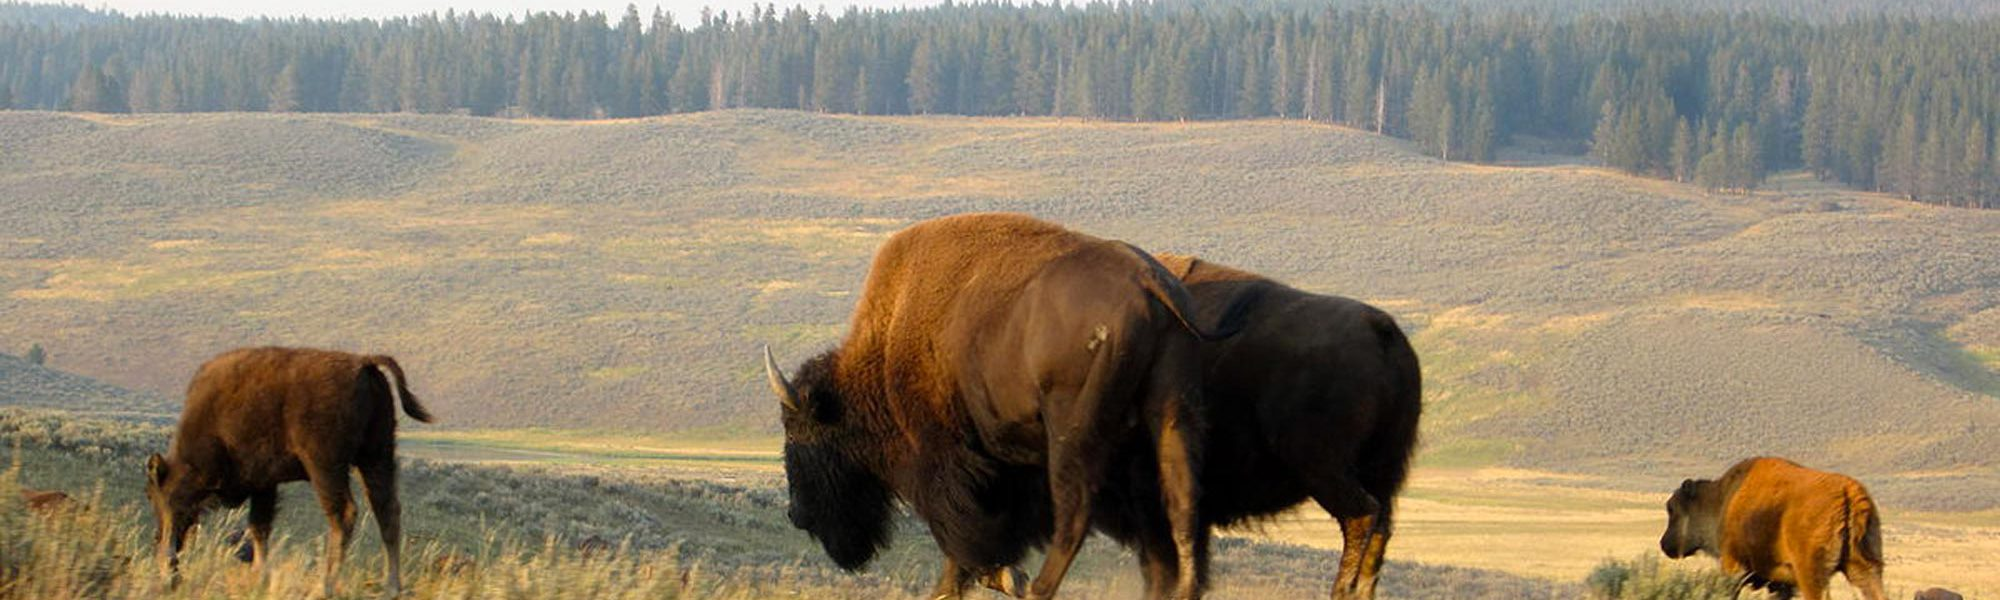 s-yellowstone-bisons